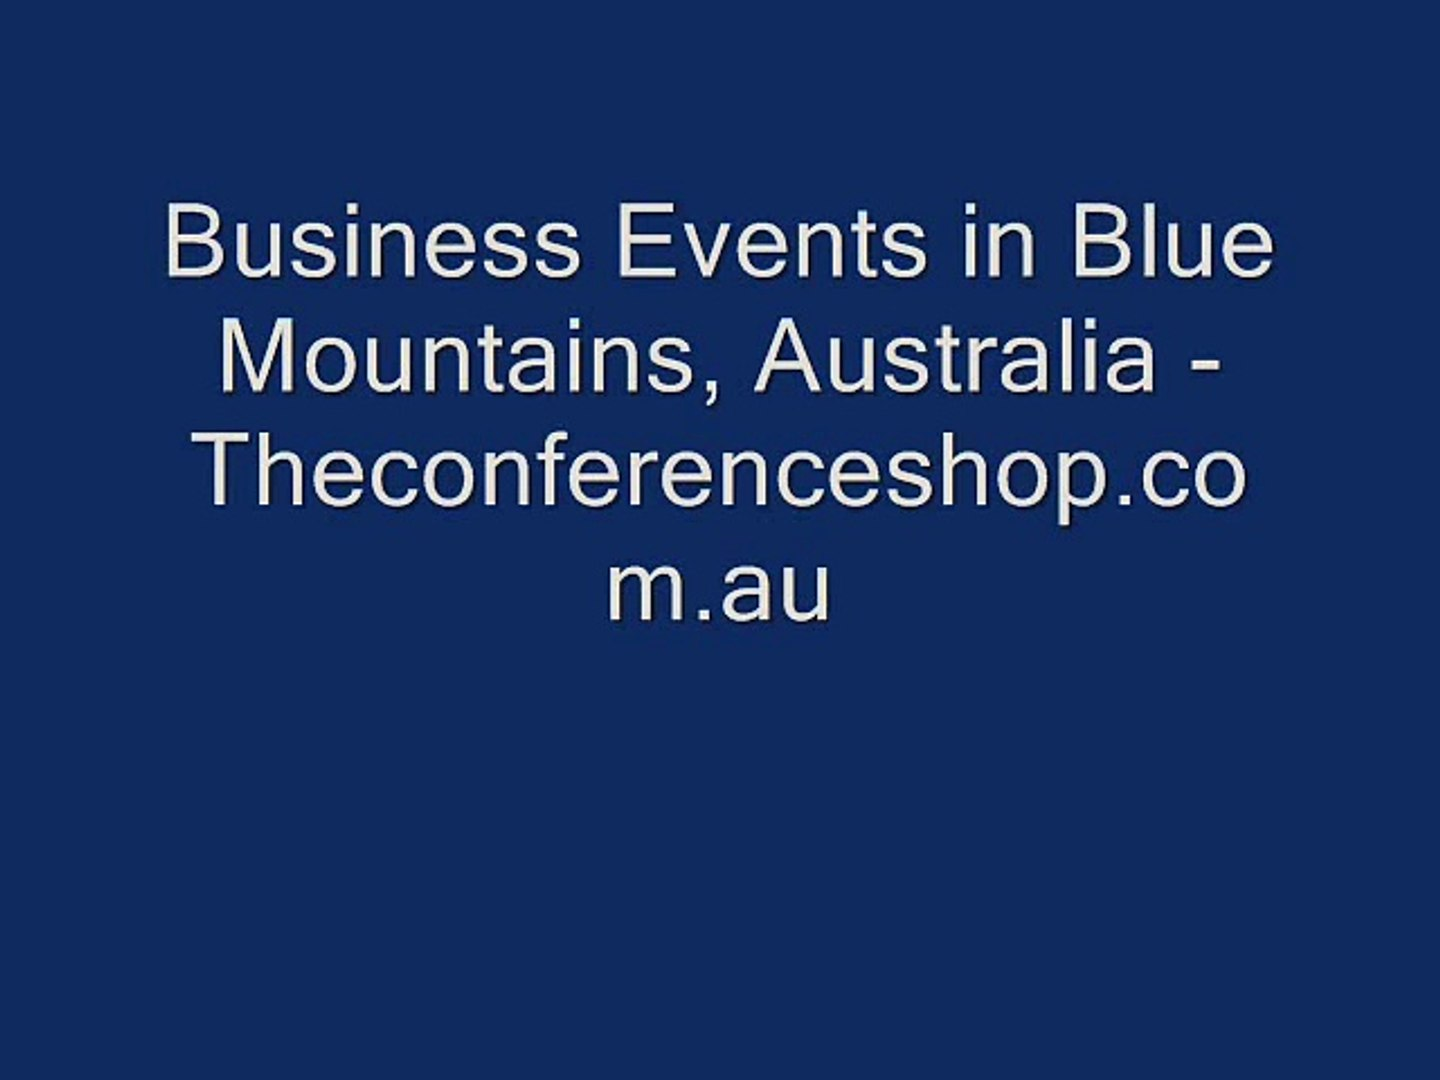 Business Events in Blue Mountains, Australia - Theconferenceshop.com.au